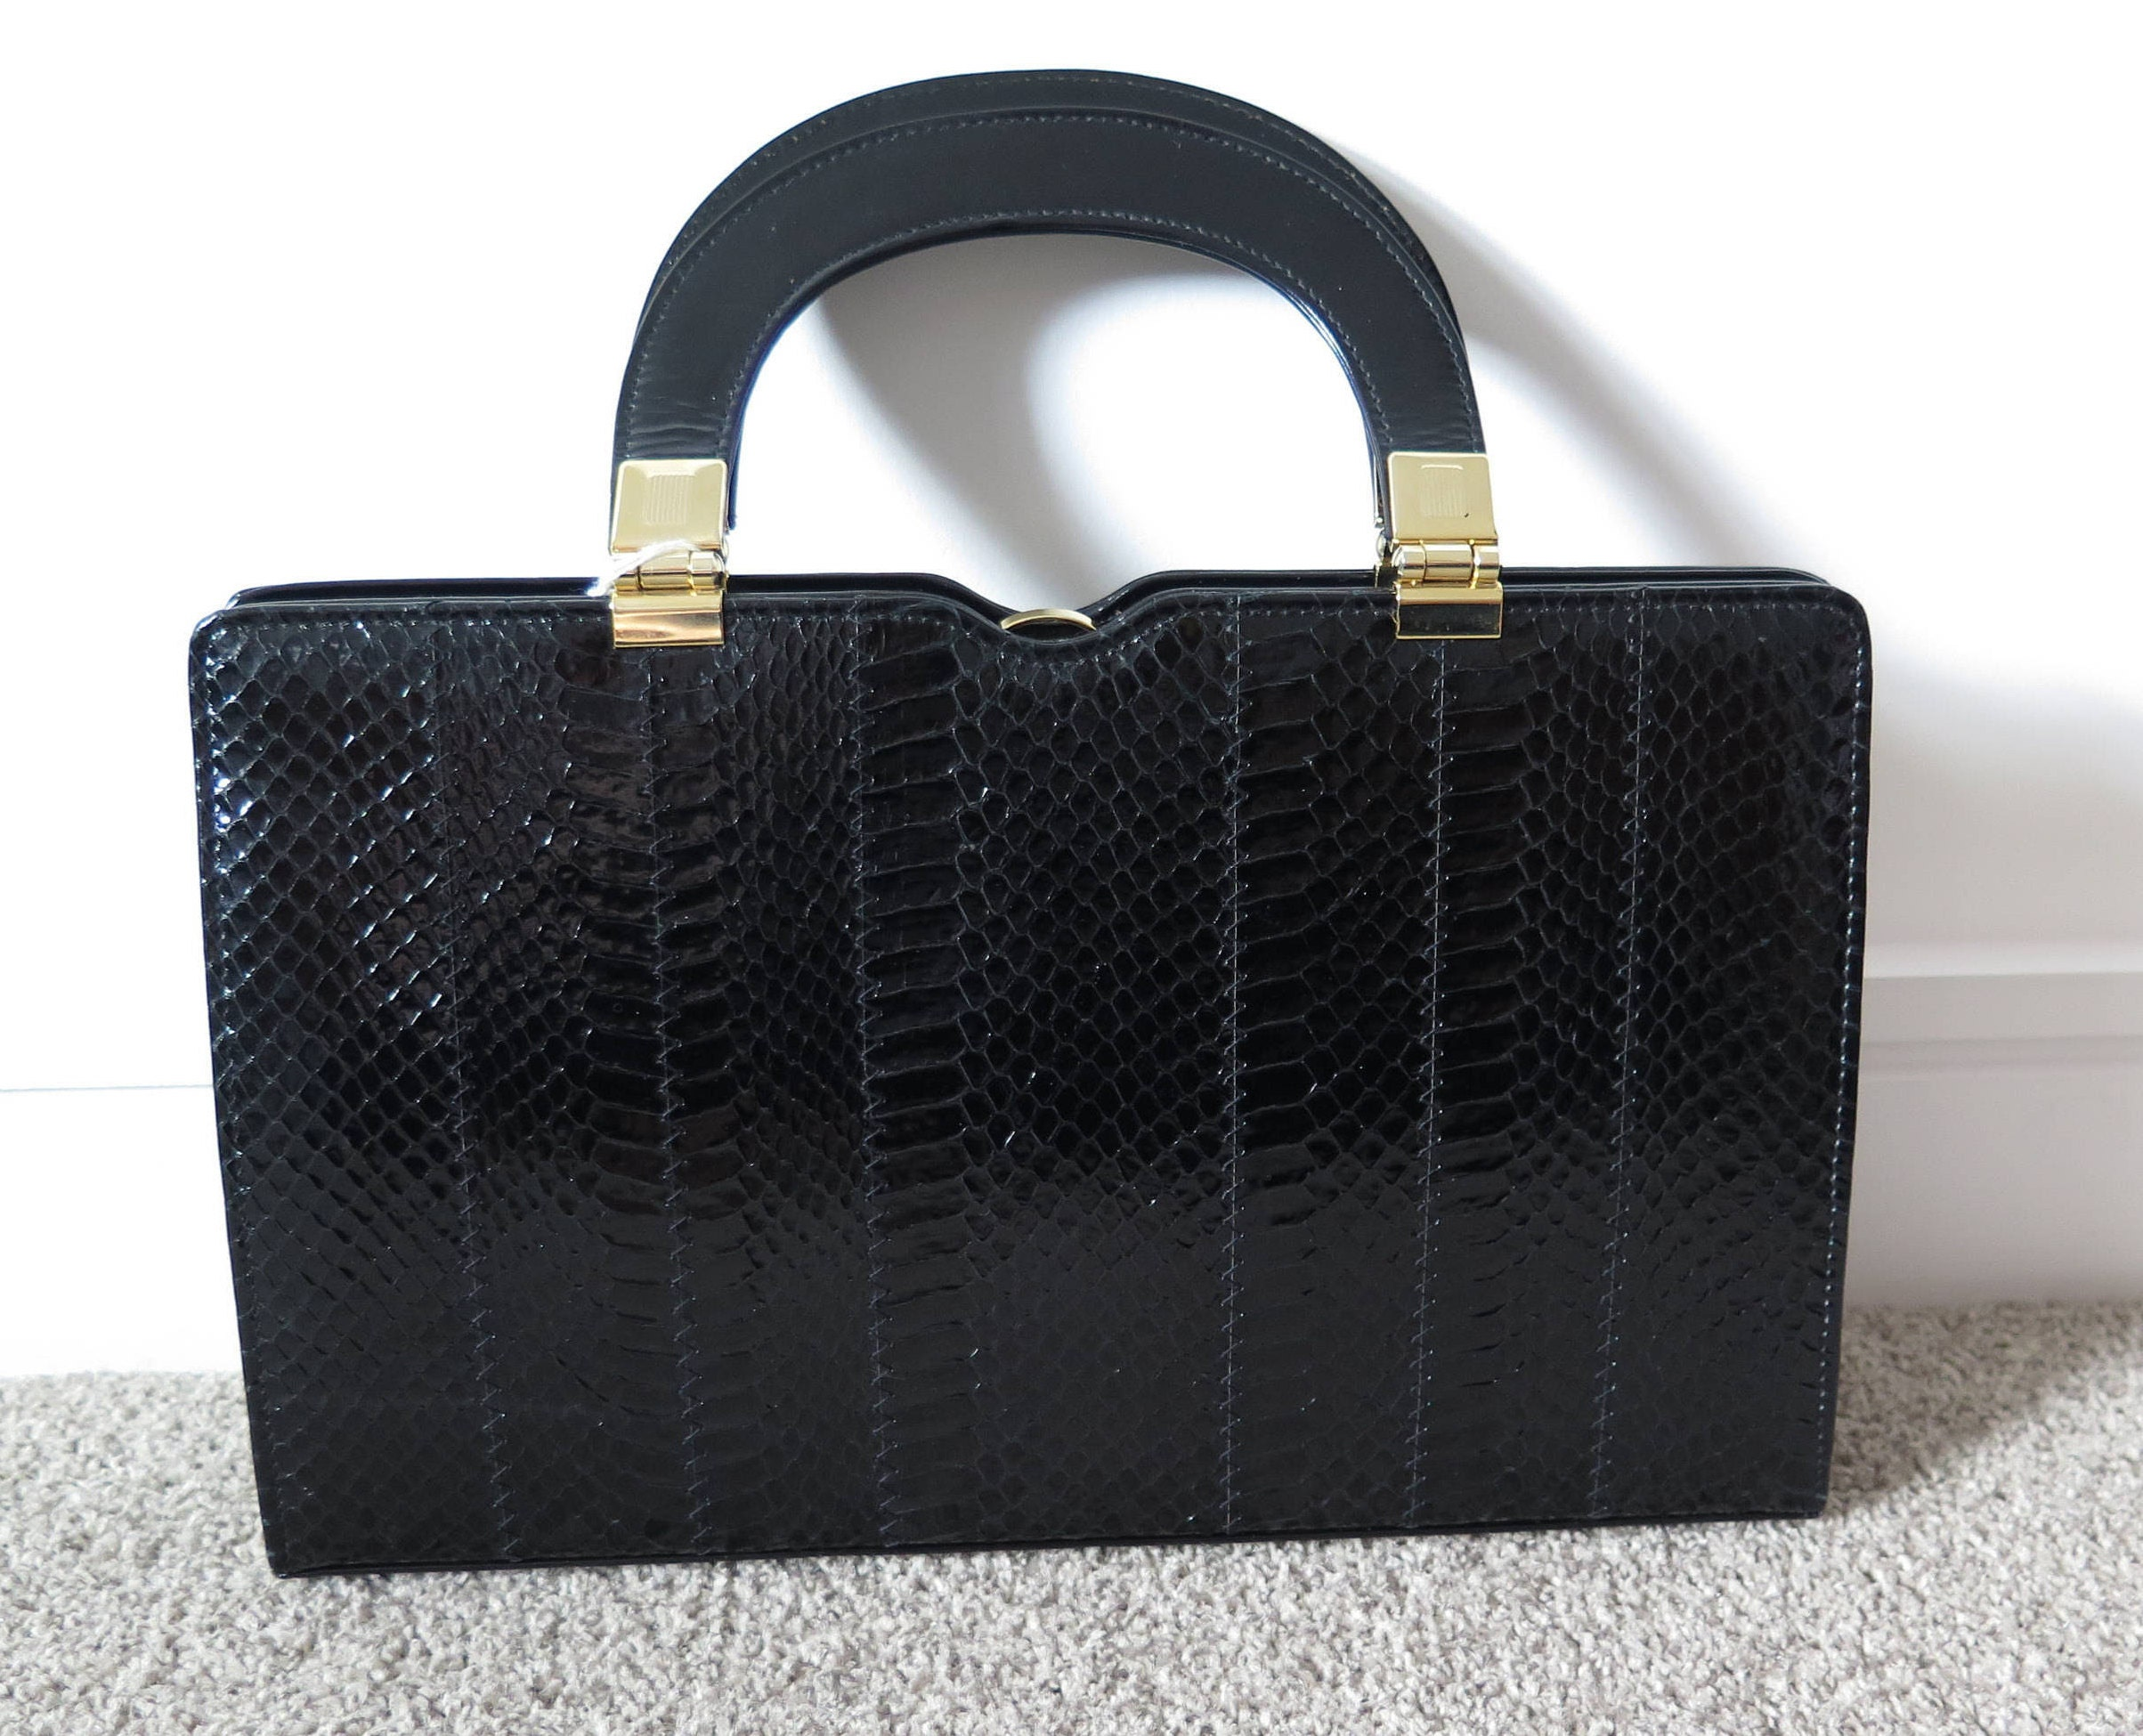 Vintage Ackery Black Python Skin And Leather Handbag With Detachable Shoulder Strap